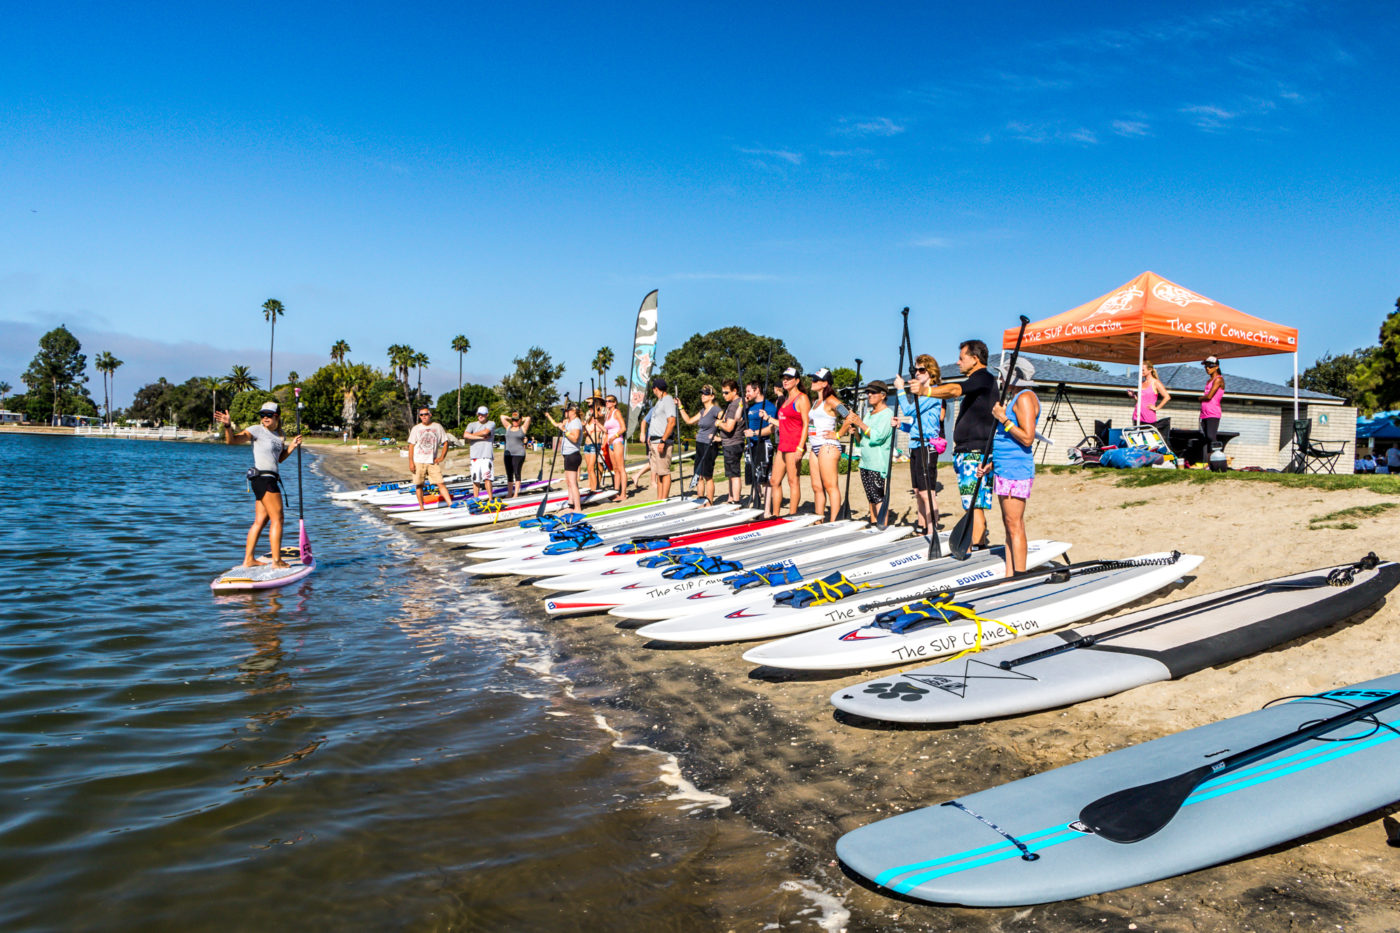 San Diego SUP Lessons, paddle boarding san diego, sup rental, san diego paddle boarding, san diego paddle board, stand up paddle board san diego, paddle board san diego, stand up paddle boarding san diego, san diego kayak rentals, kayak rentals san diego, paddleboard lessons, paddle board rental san diego, san diego paddle board rentals, sup yoga, sup san diego, Sup pups, Sup pups san diego, San diego sup yoga, Sup lesson san diego, Where to paddleboard with your dog , san diego paddleboard lessons, Sup rental san diego, La jolla cove paddleboarding, stand up paddle board lessons san diego, point loma paddleboard rentals, liberty station sup rentals